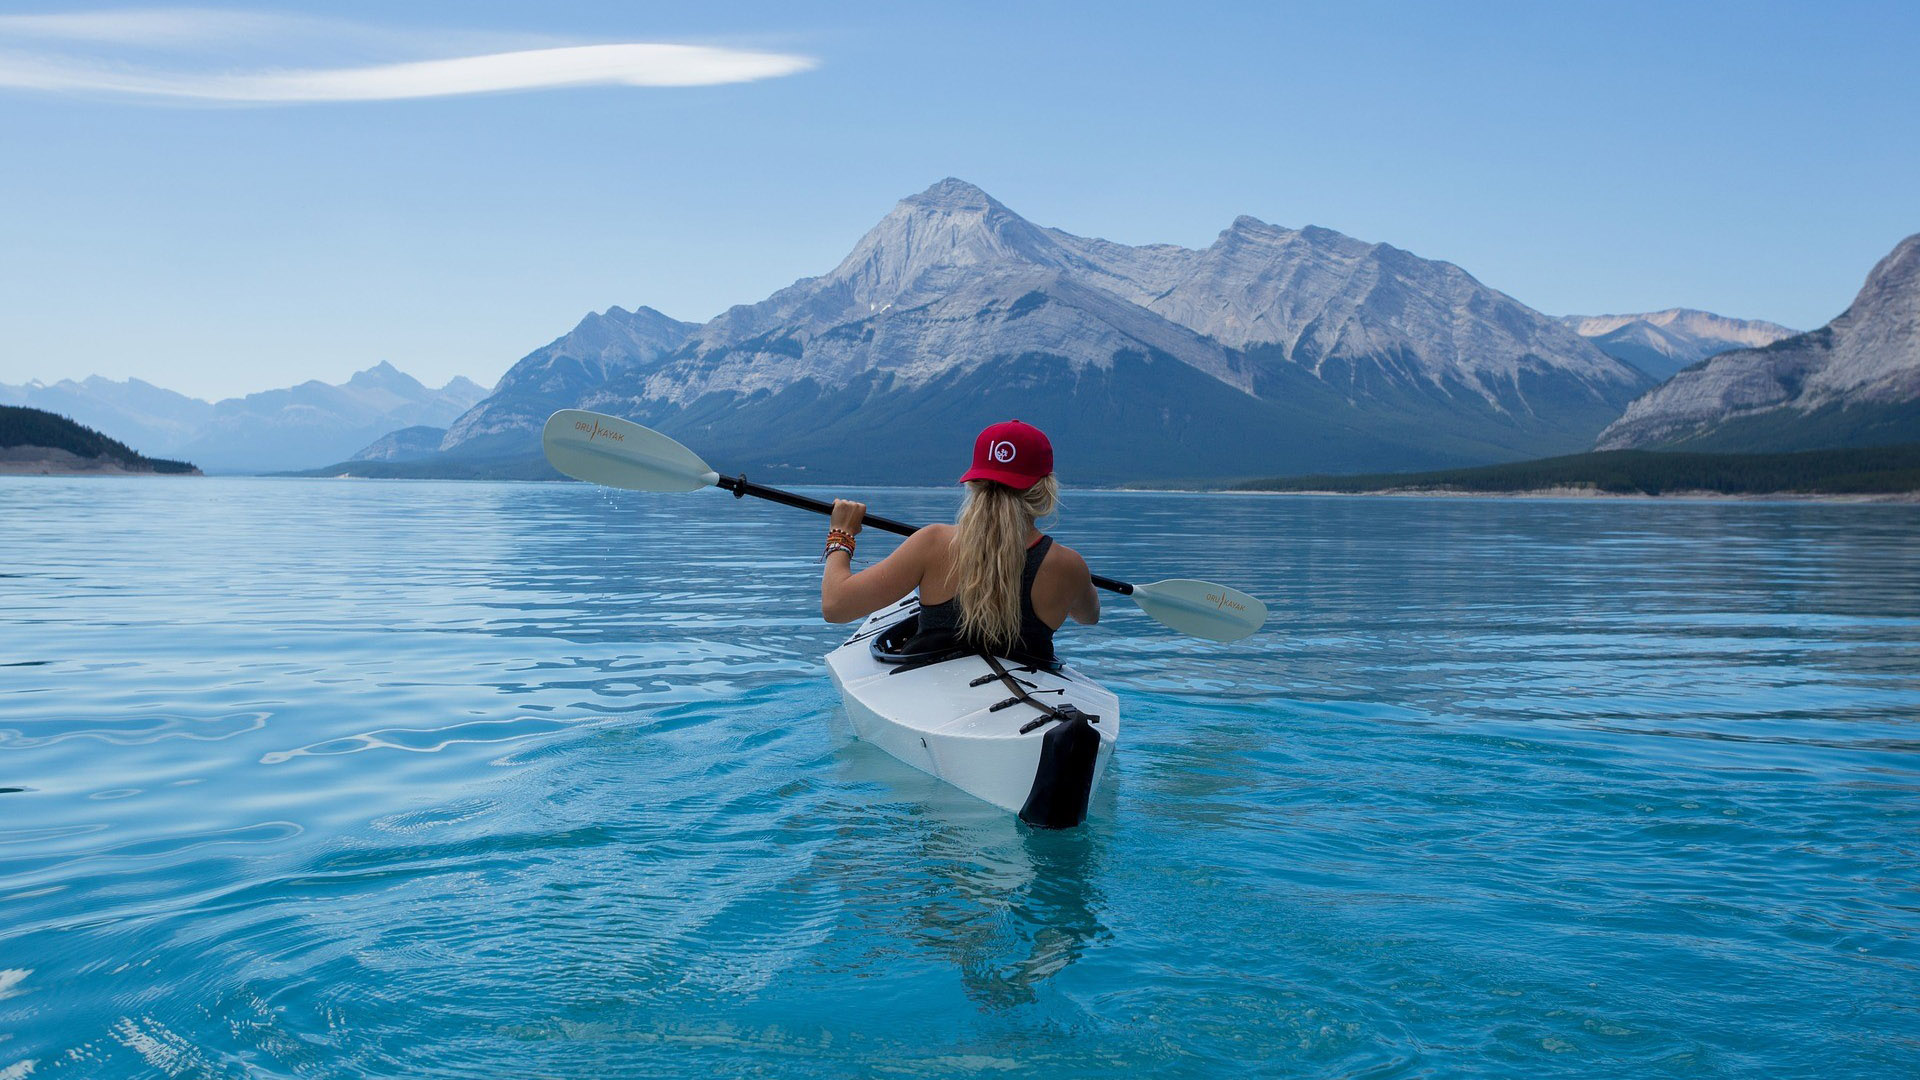 A woman in a kayak in mountain landscape